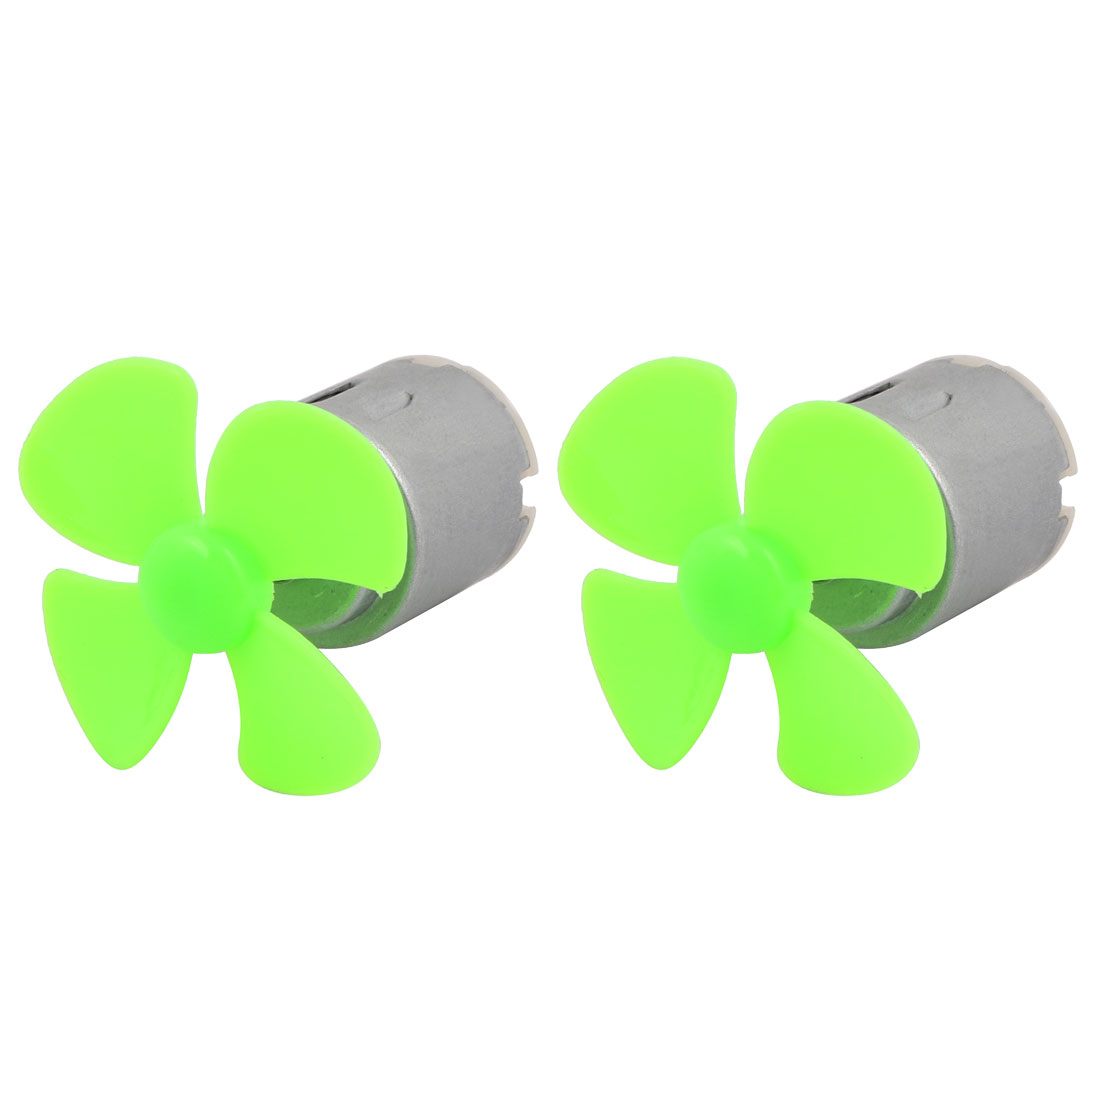 2pcs DC 3V 0.15A 19500RPM Strong Force Motor 4 Vanes 40mm Green Propeller for RC Aircraft